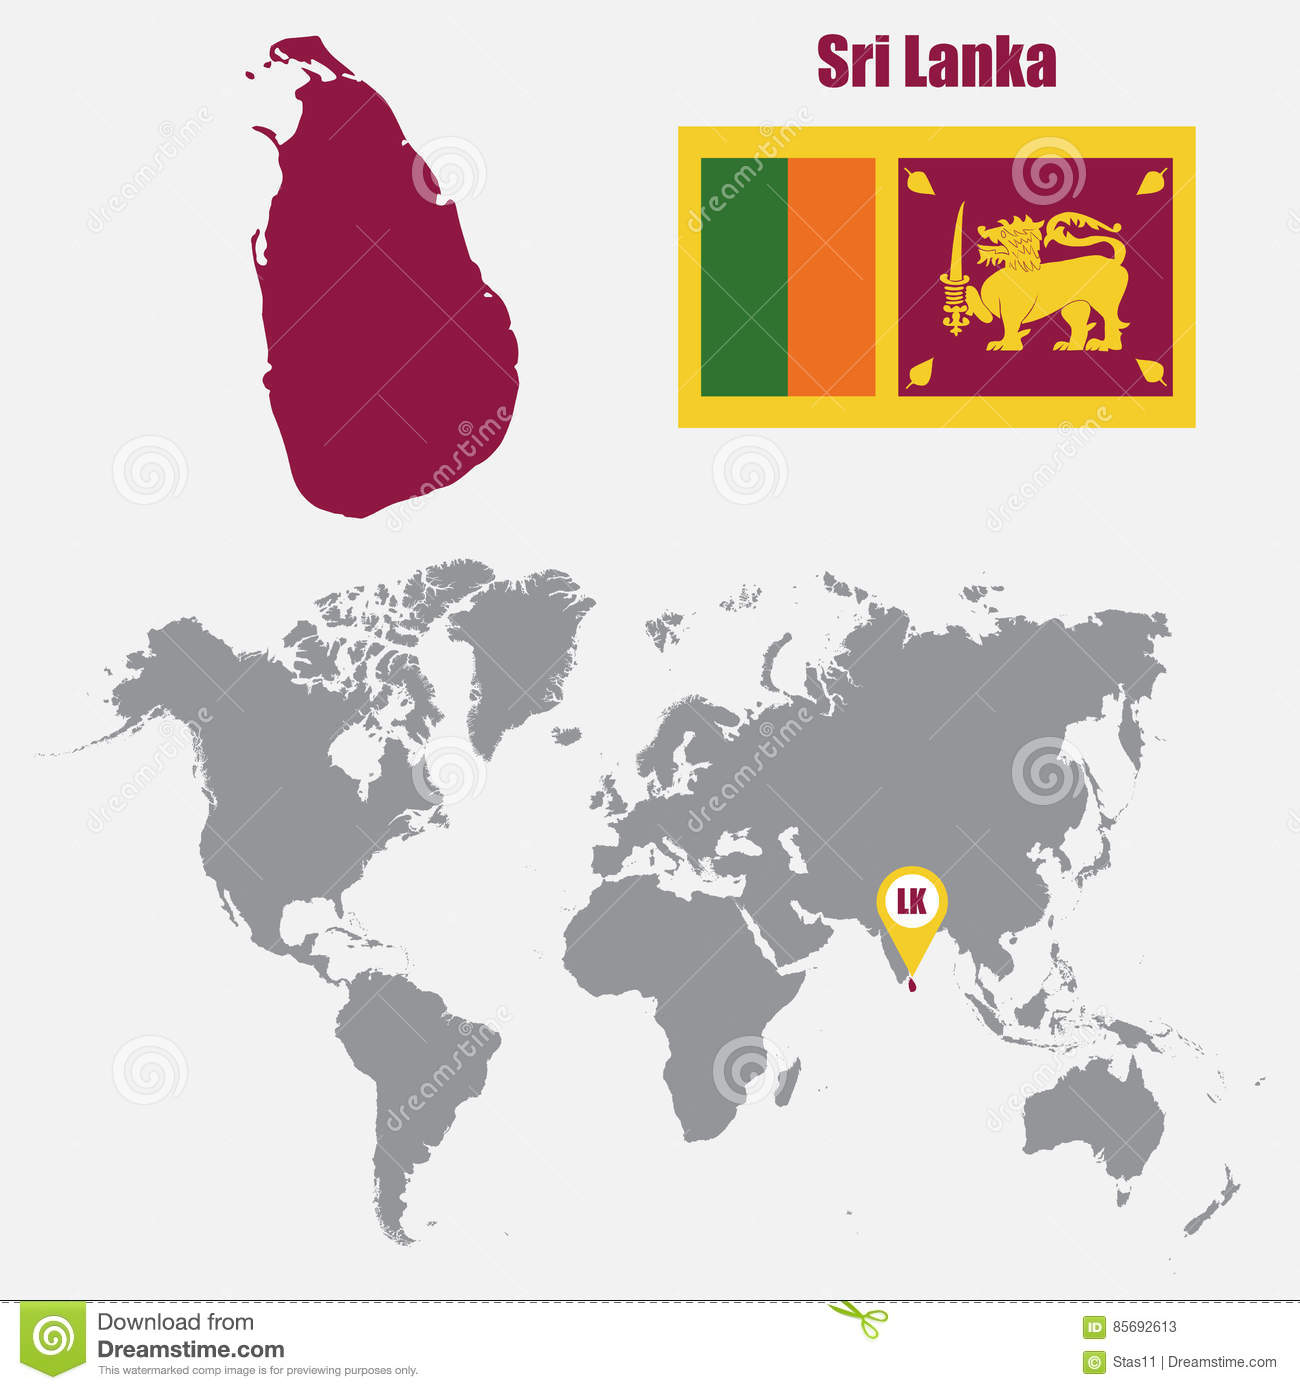 Sri Lanka World Map Sri Lanka Map On A World Map With Flag And Map Pointer. Vector  Sri Lanka World Map